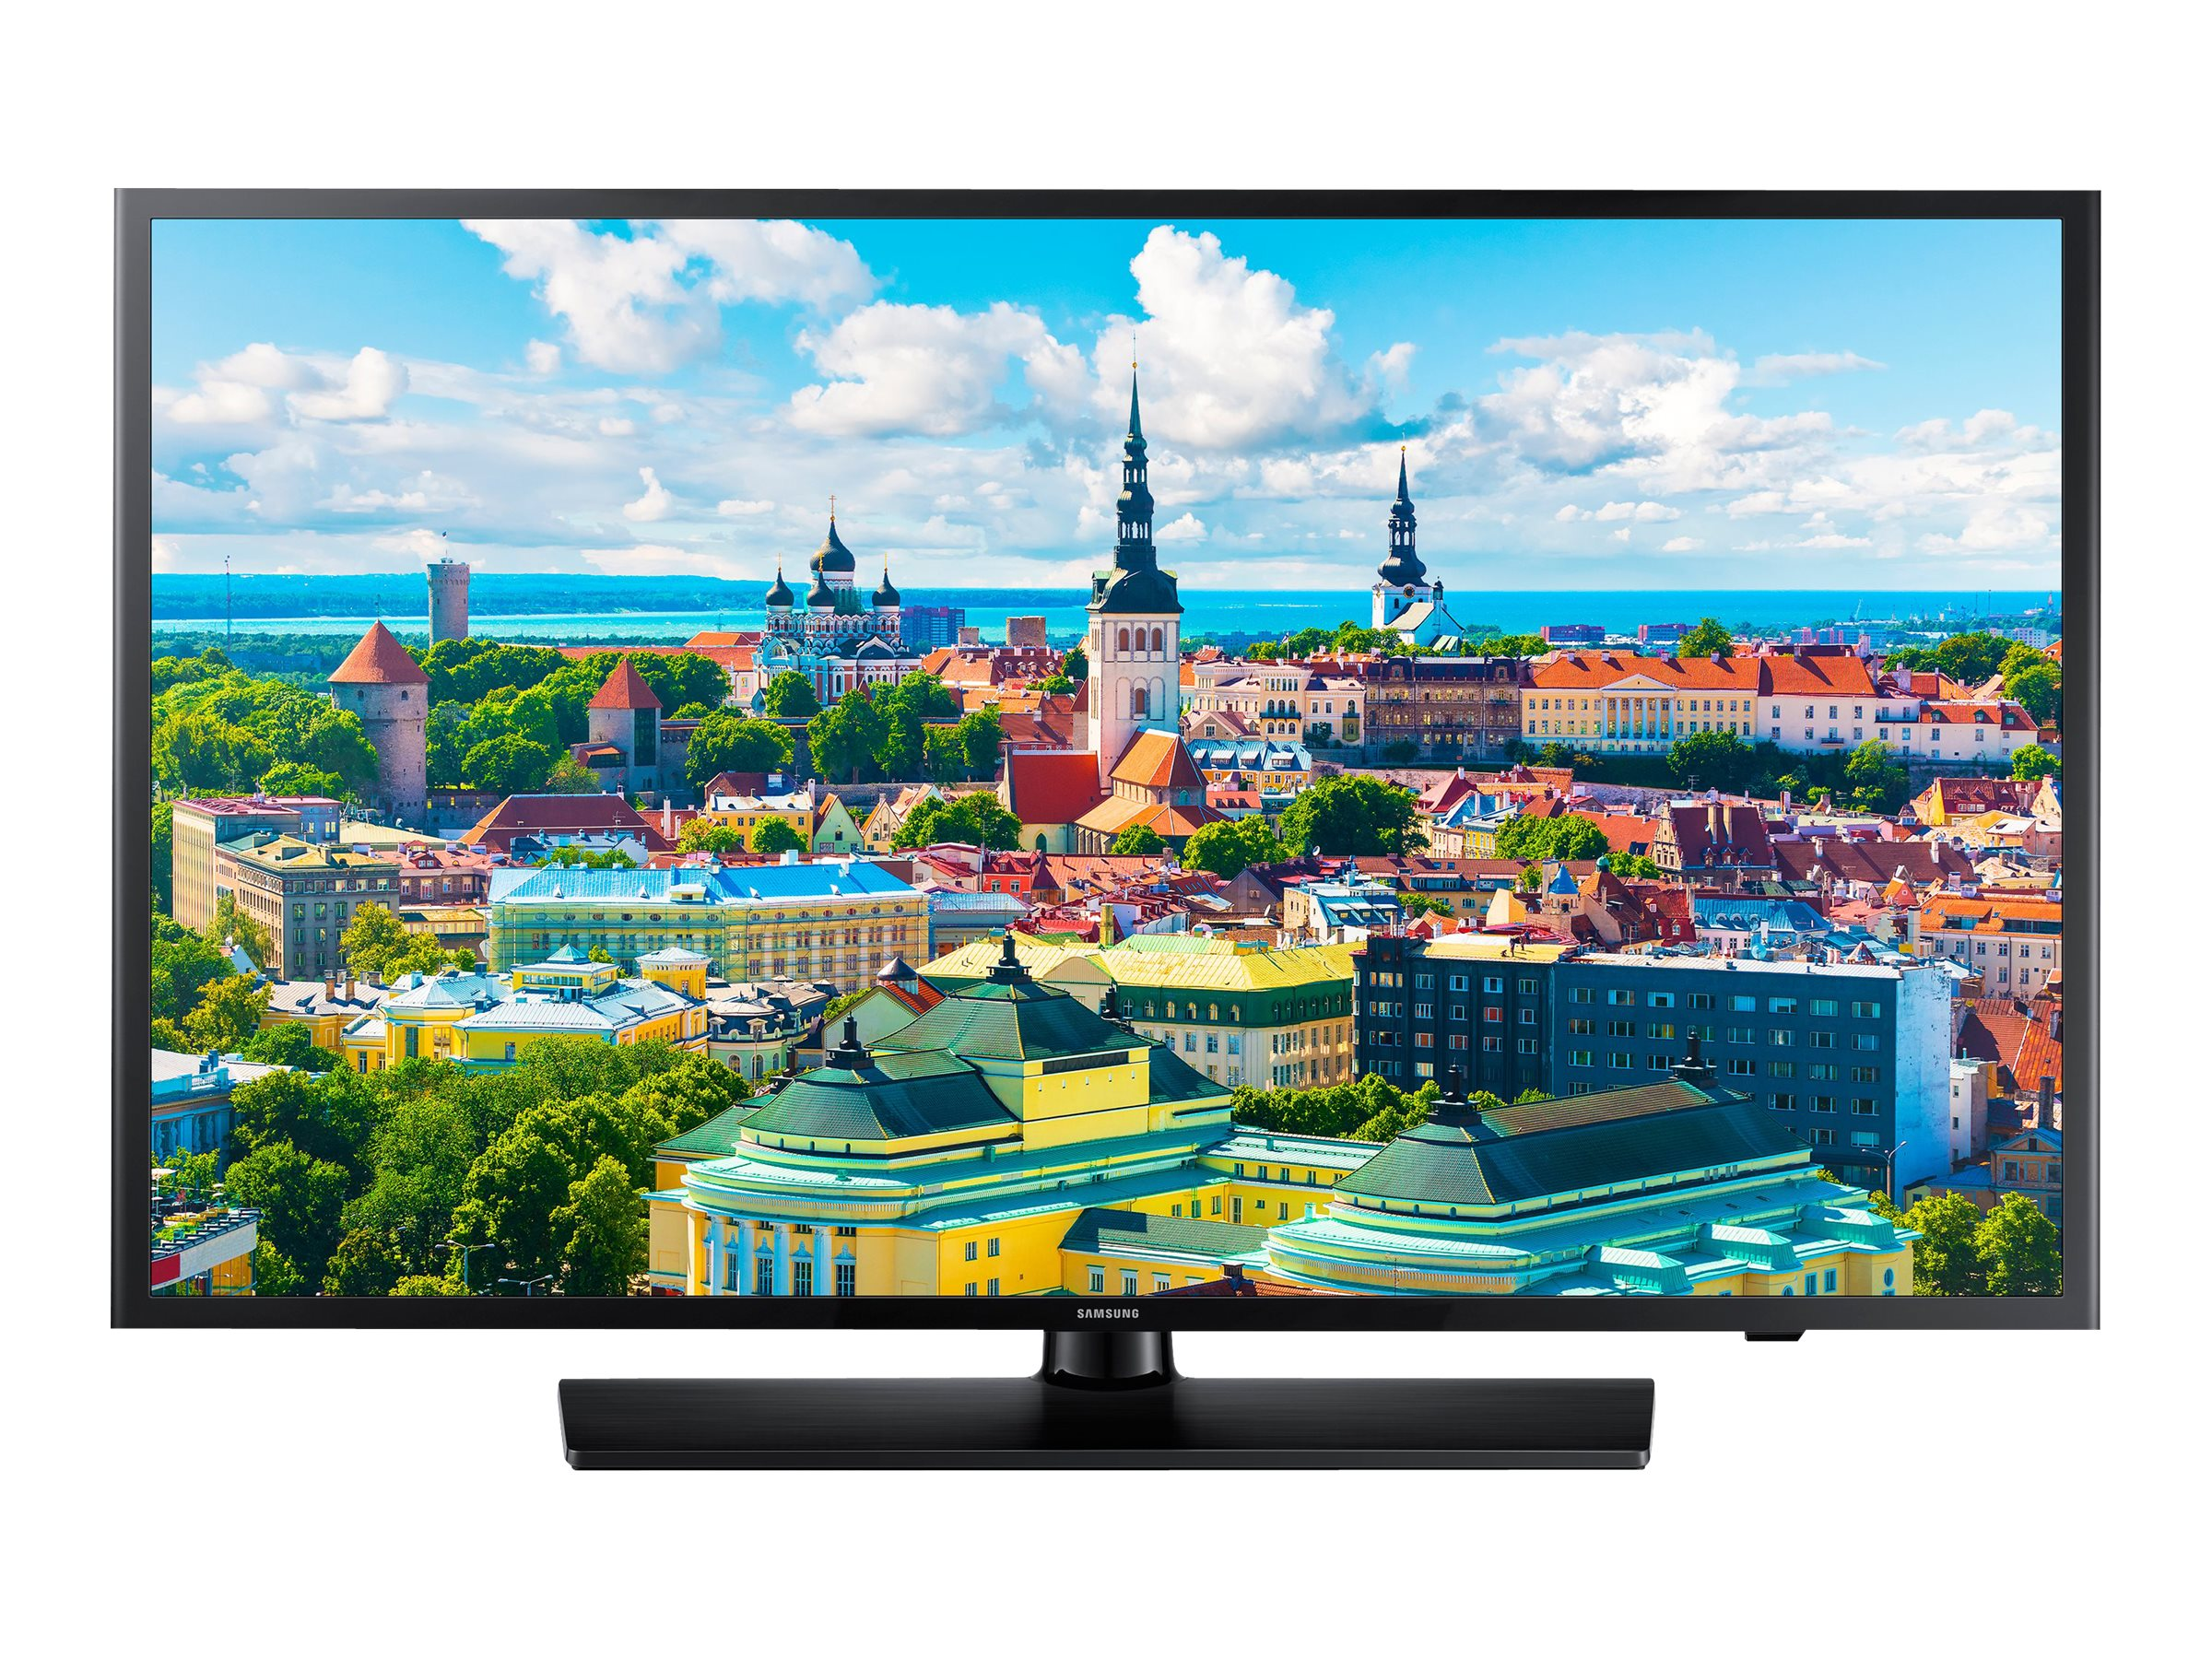 Scratch & Dent Samsung 50 478 Series Full HD LED-LCD Hospitality TV, Black